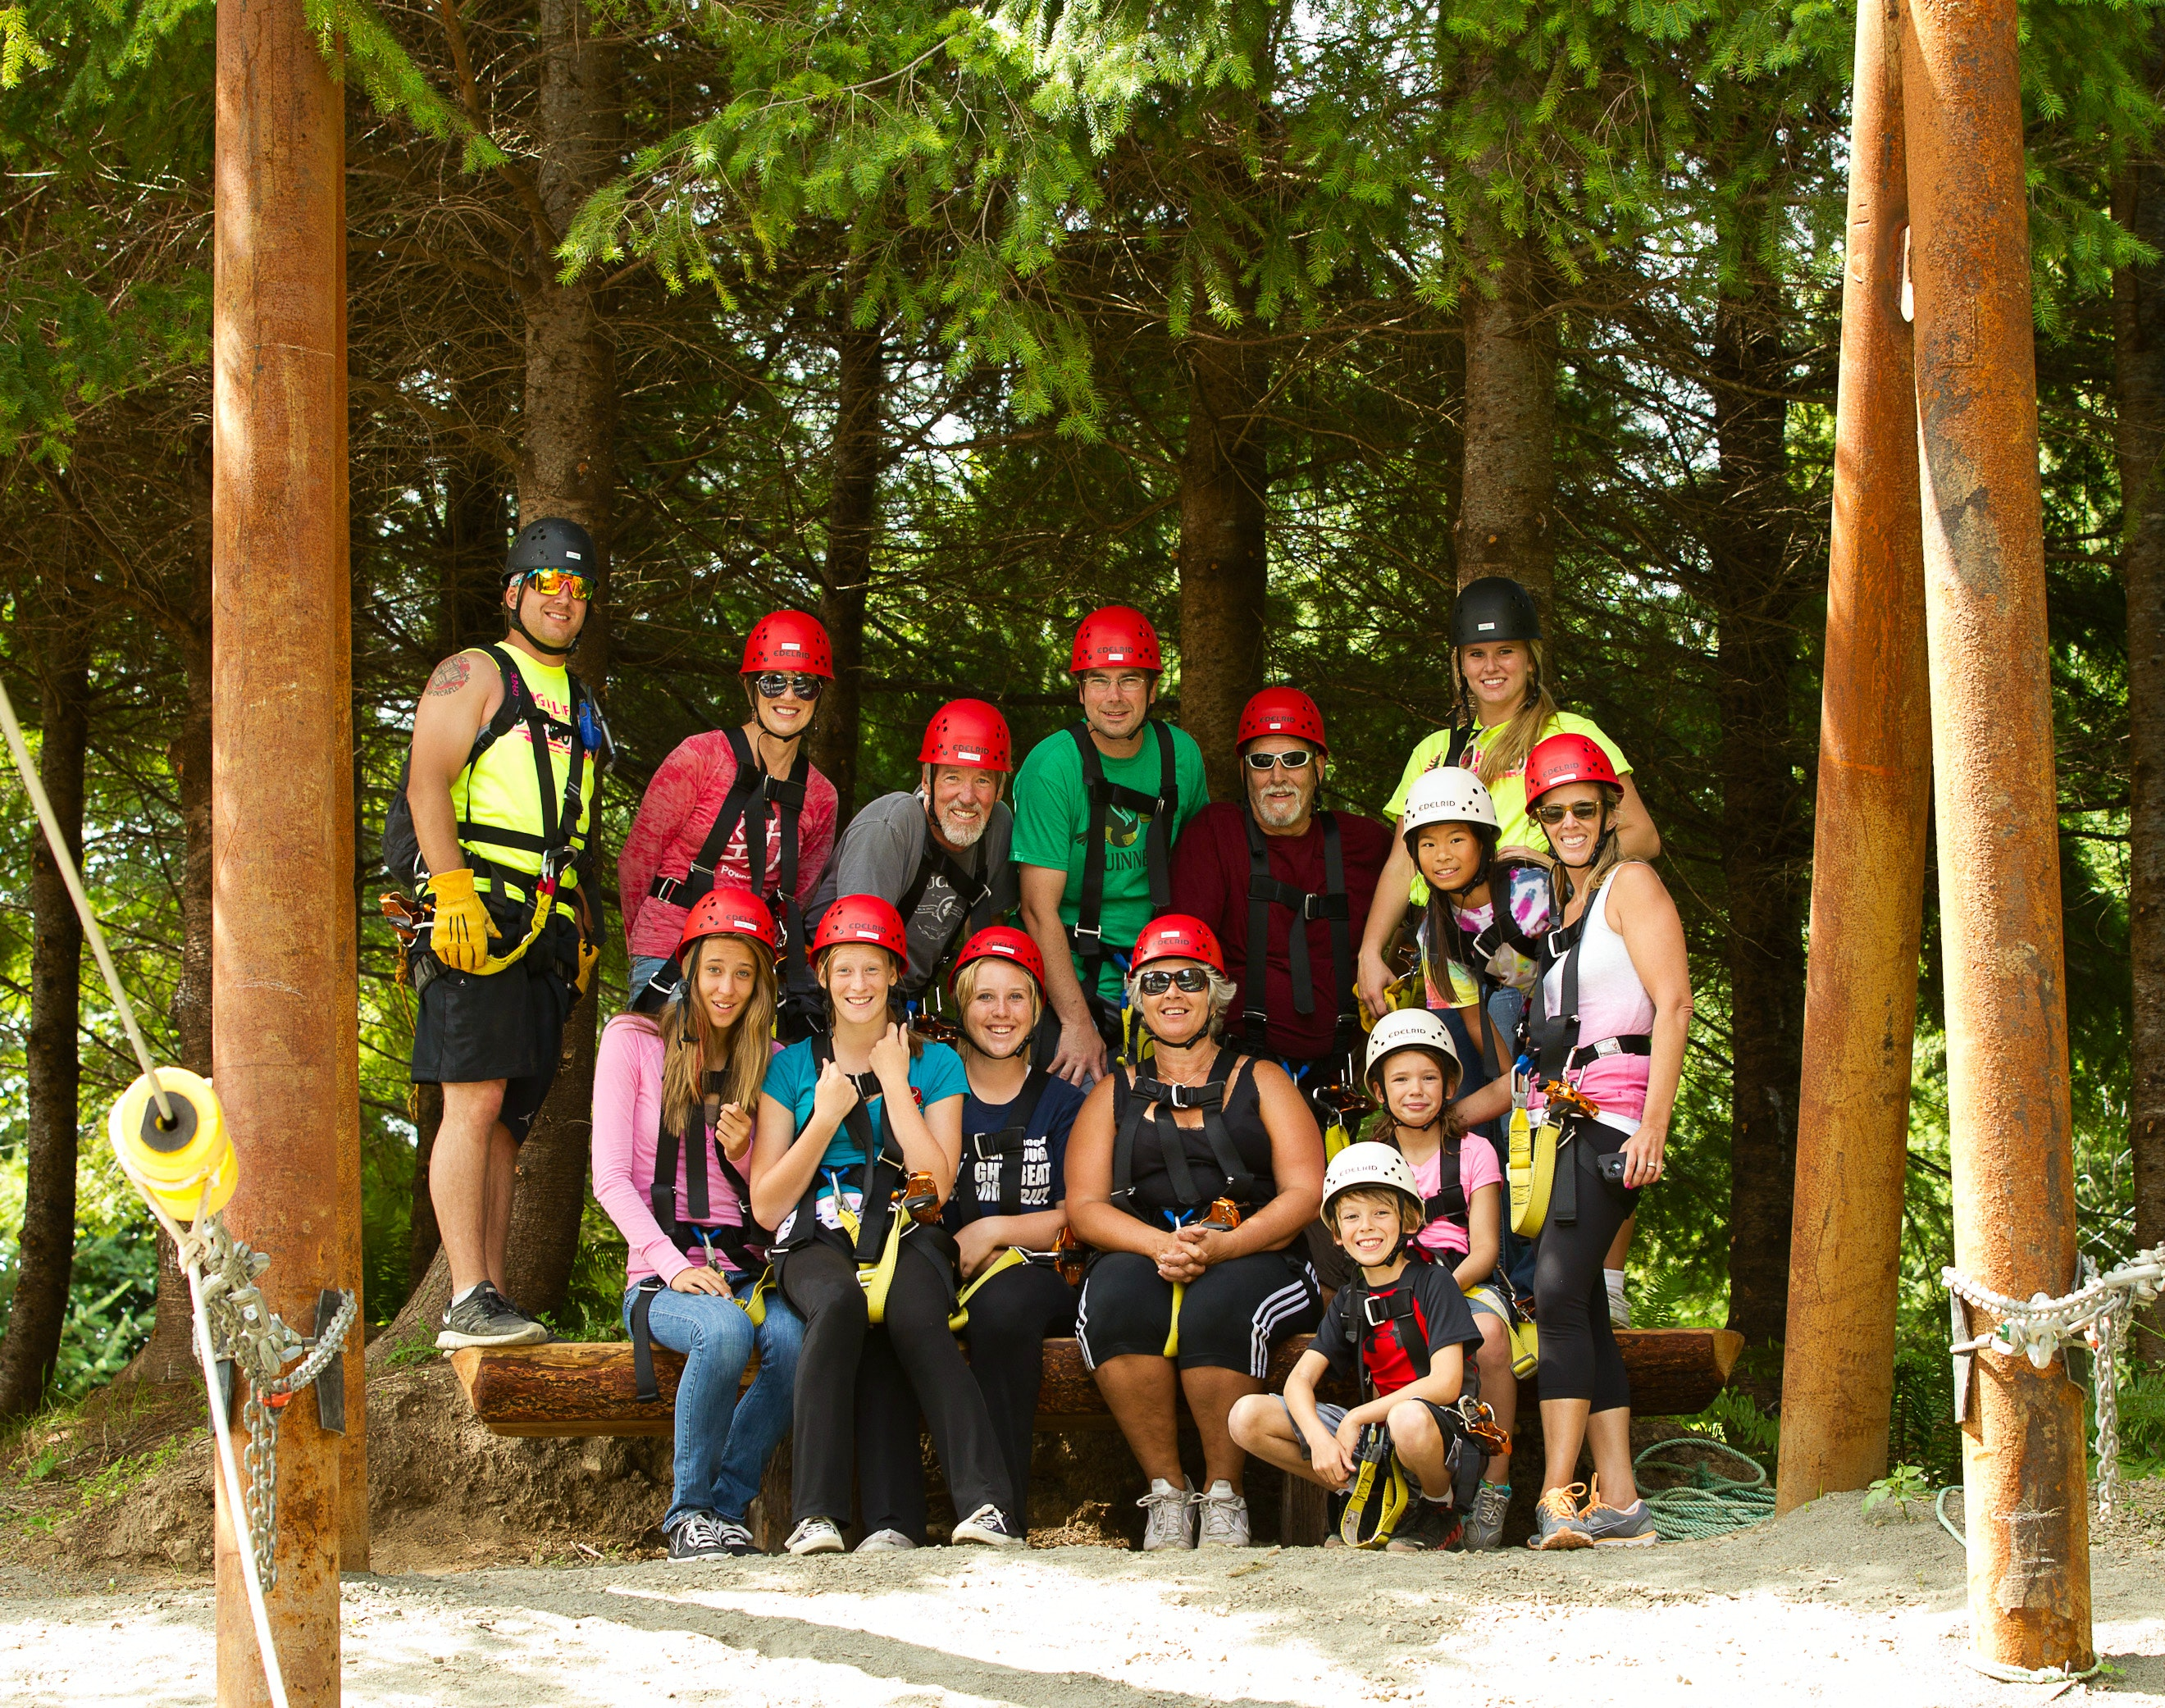 A ziplining group poses for a photo on the course